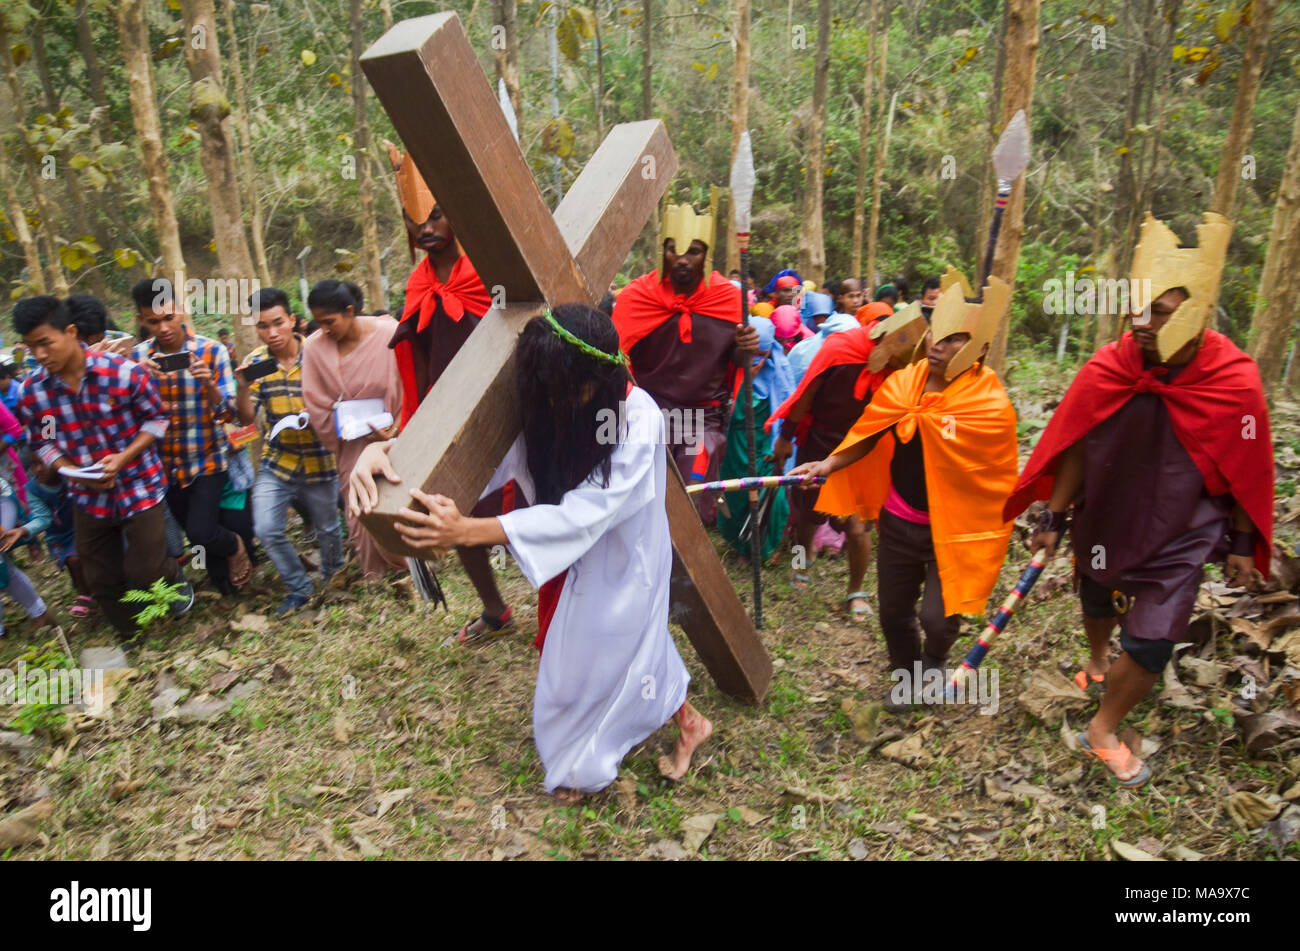 Good Friday procession, Guwahati, Assam, India. 30th March 2018. A devotee dressed as Jesus Christ re-enacts the Crucifixion during Good Friday procession in Guwahati. - Stock Image